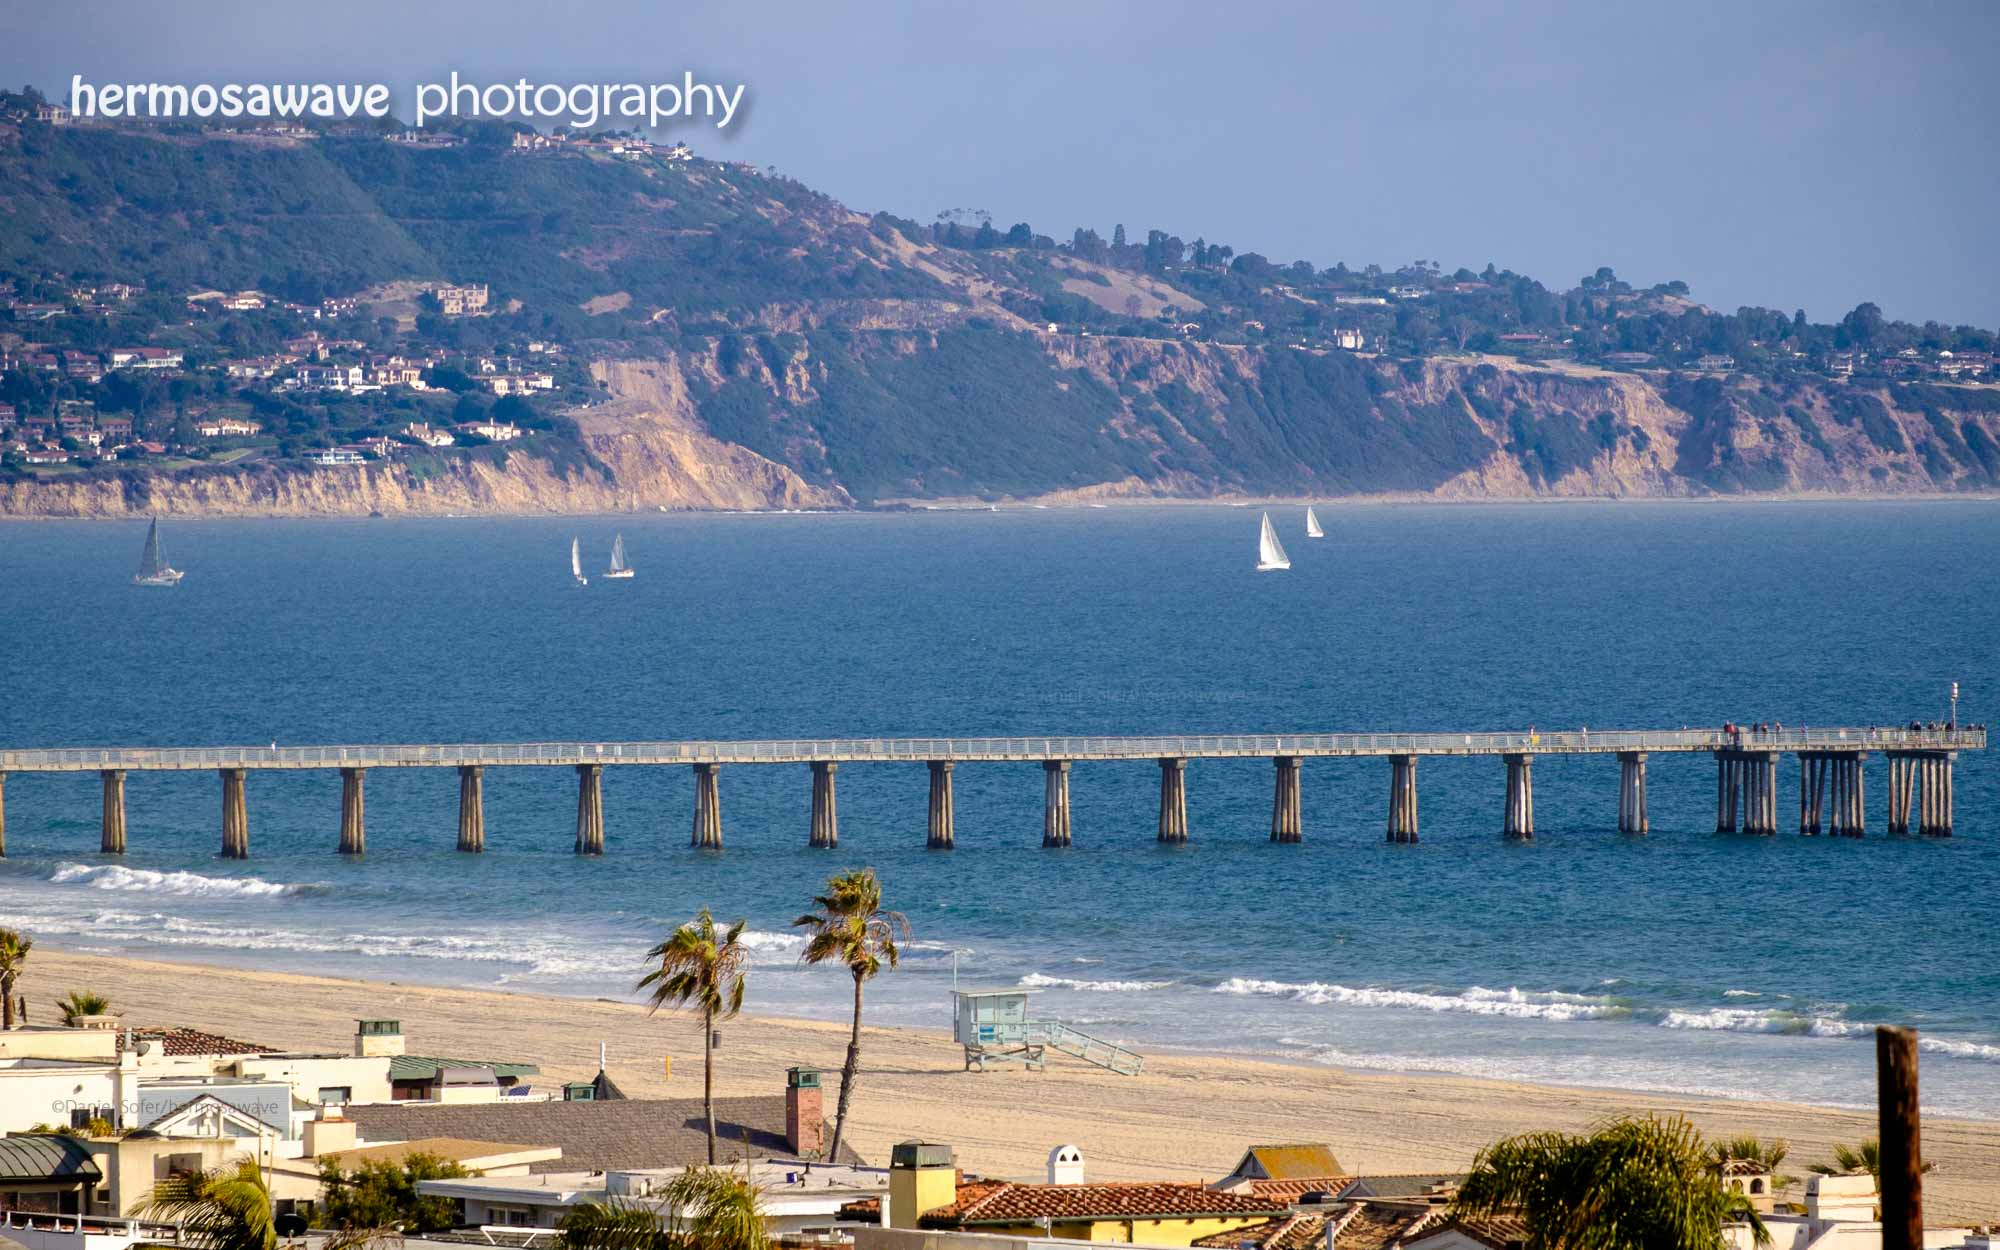 Sailboats and the Pier